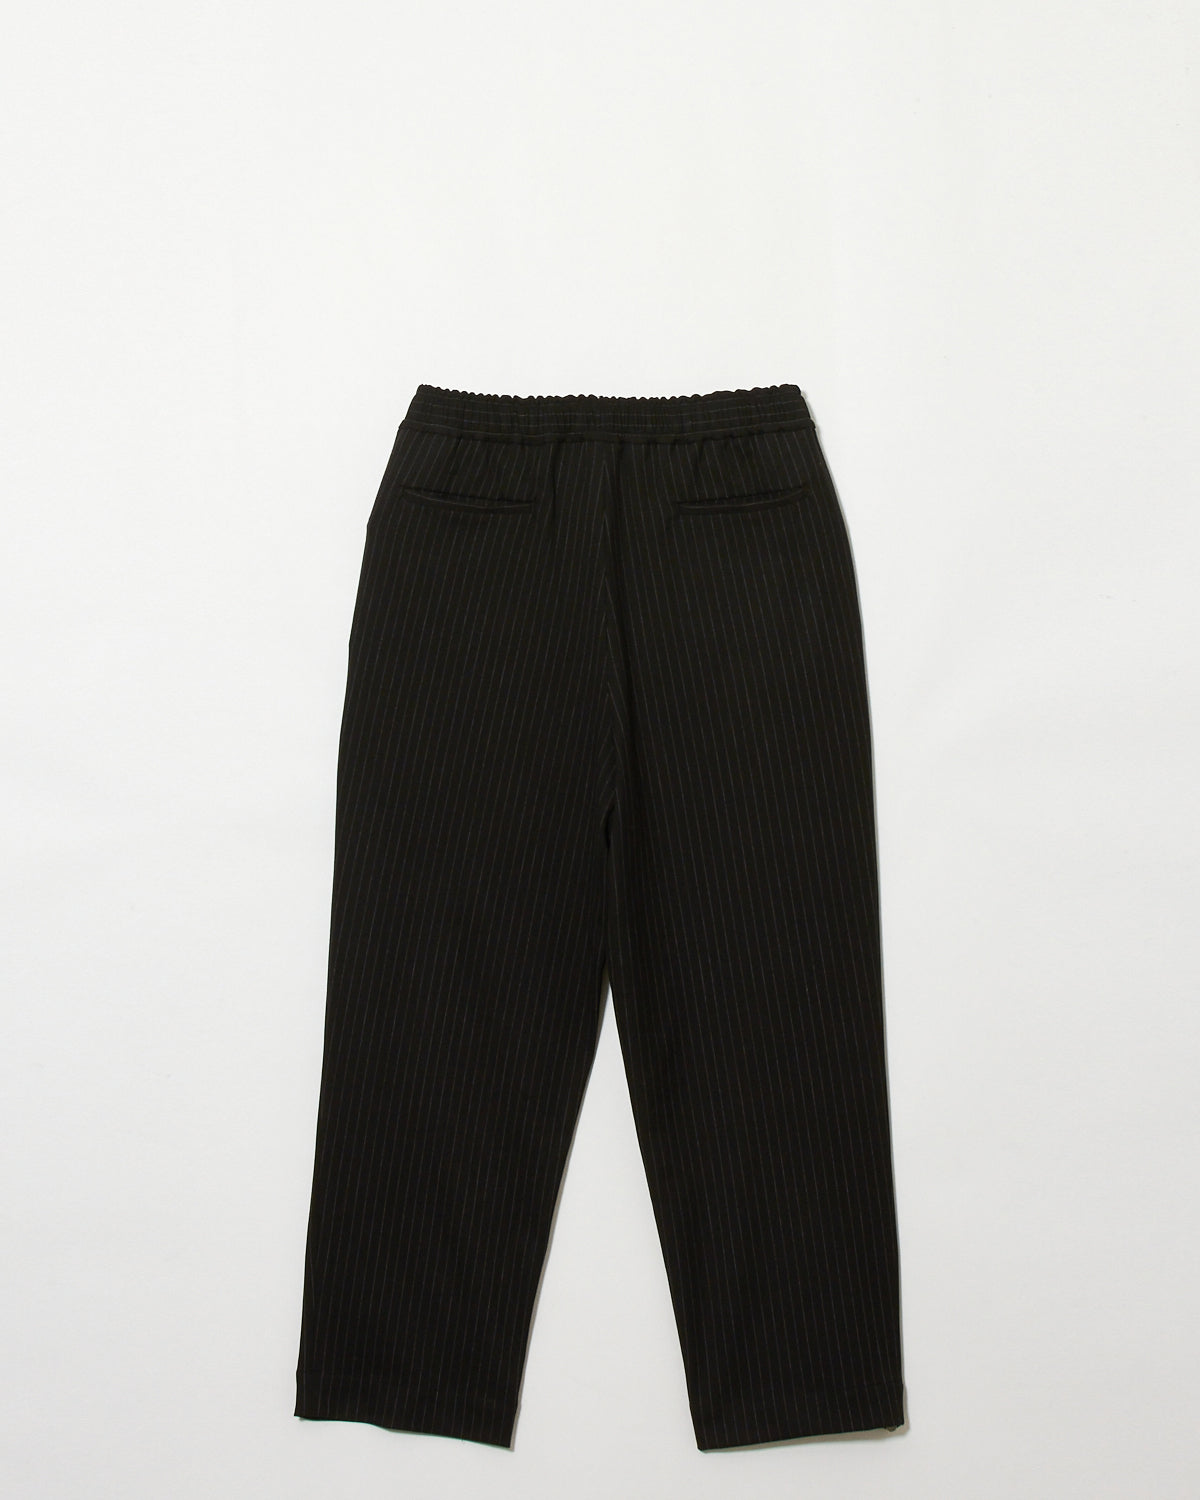 INFLUENCE / Stripe Easy Pants (black)